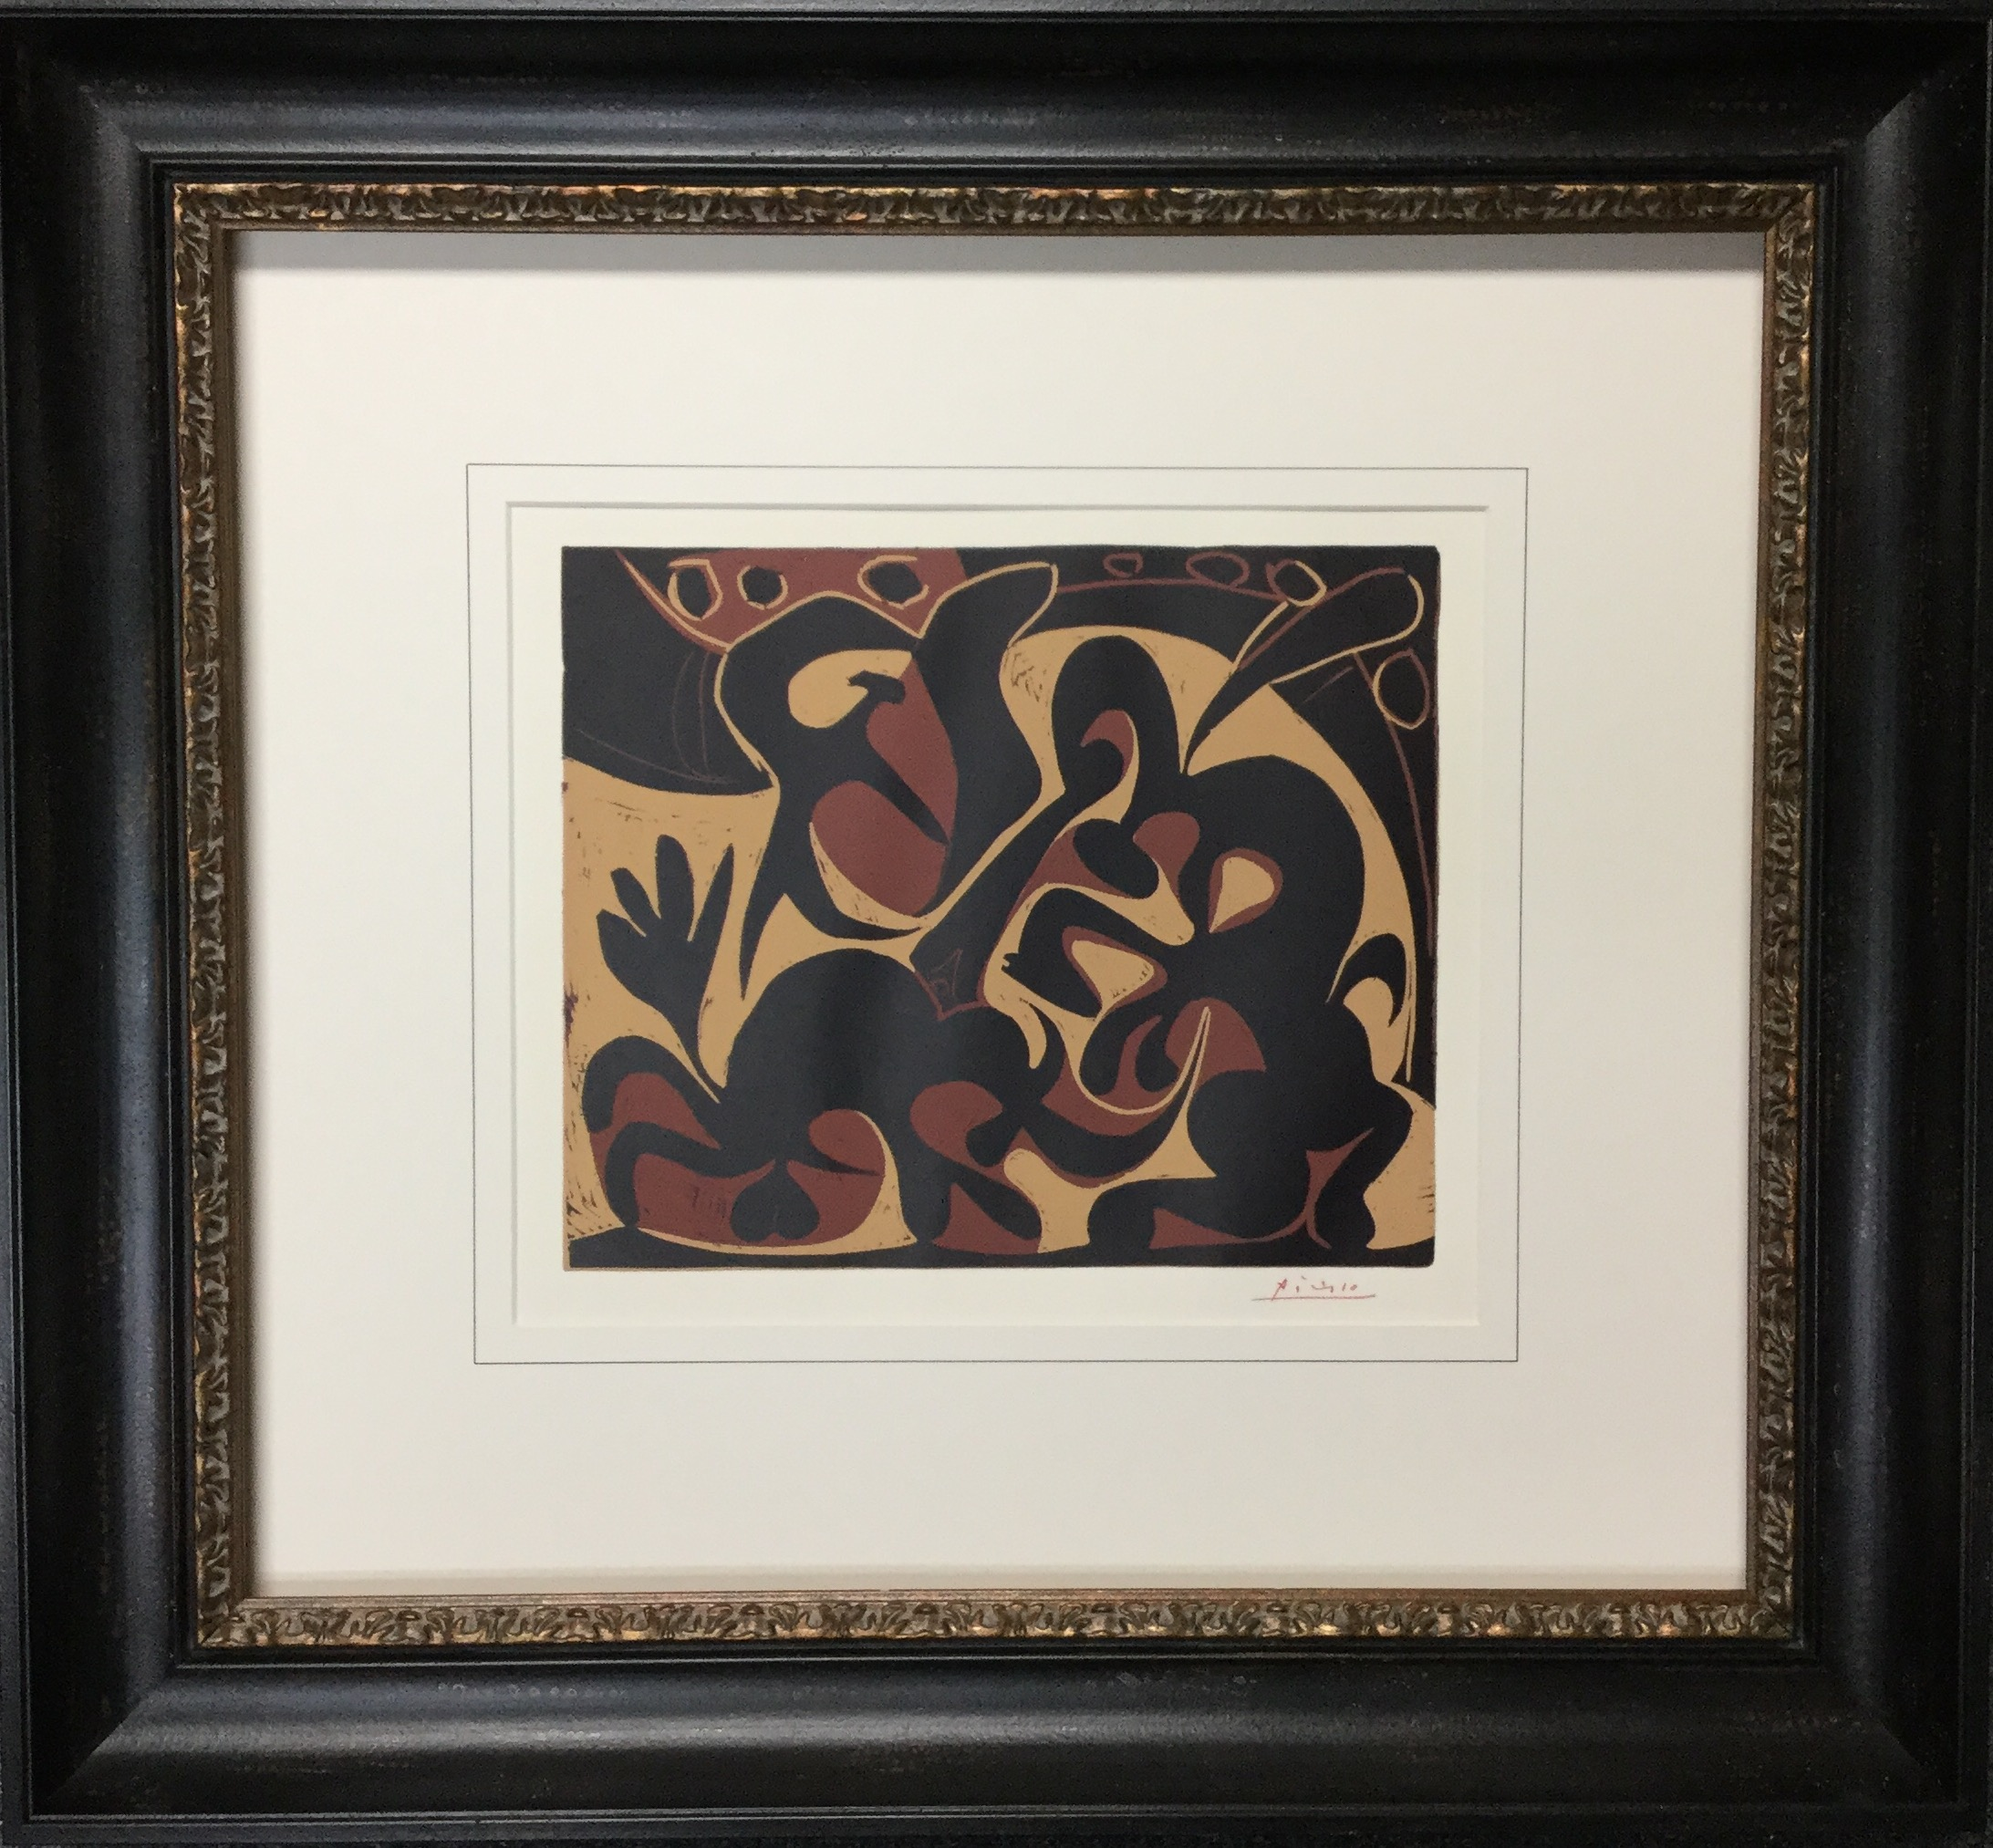 Beautiful french line design for this stunning Picasso print!